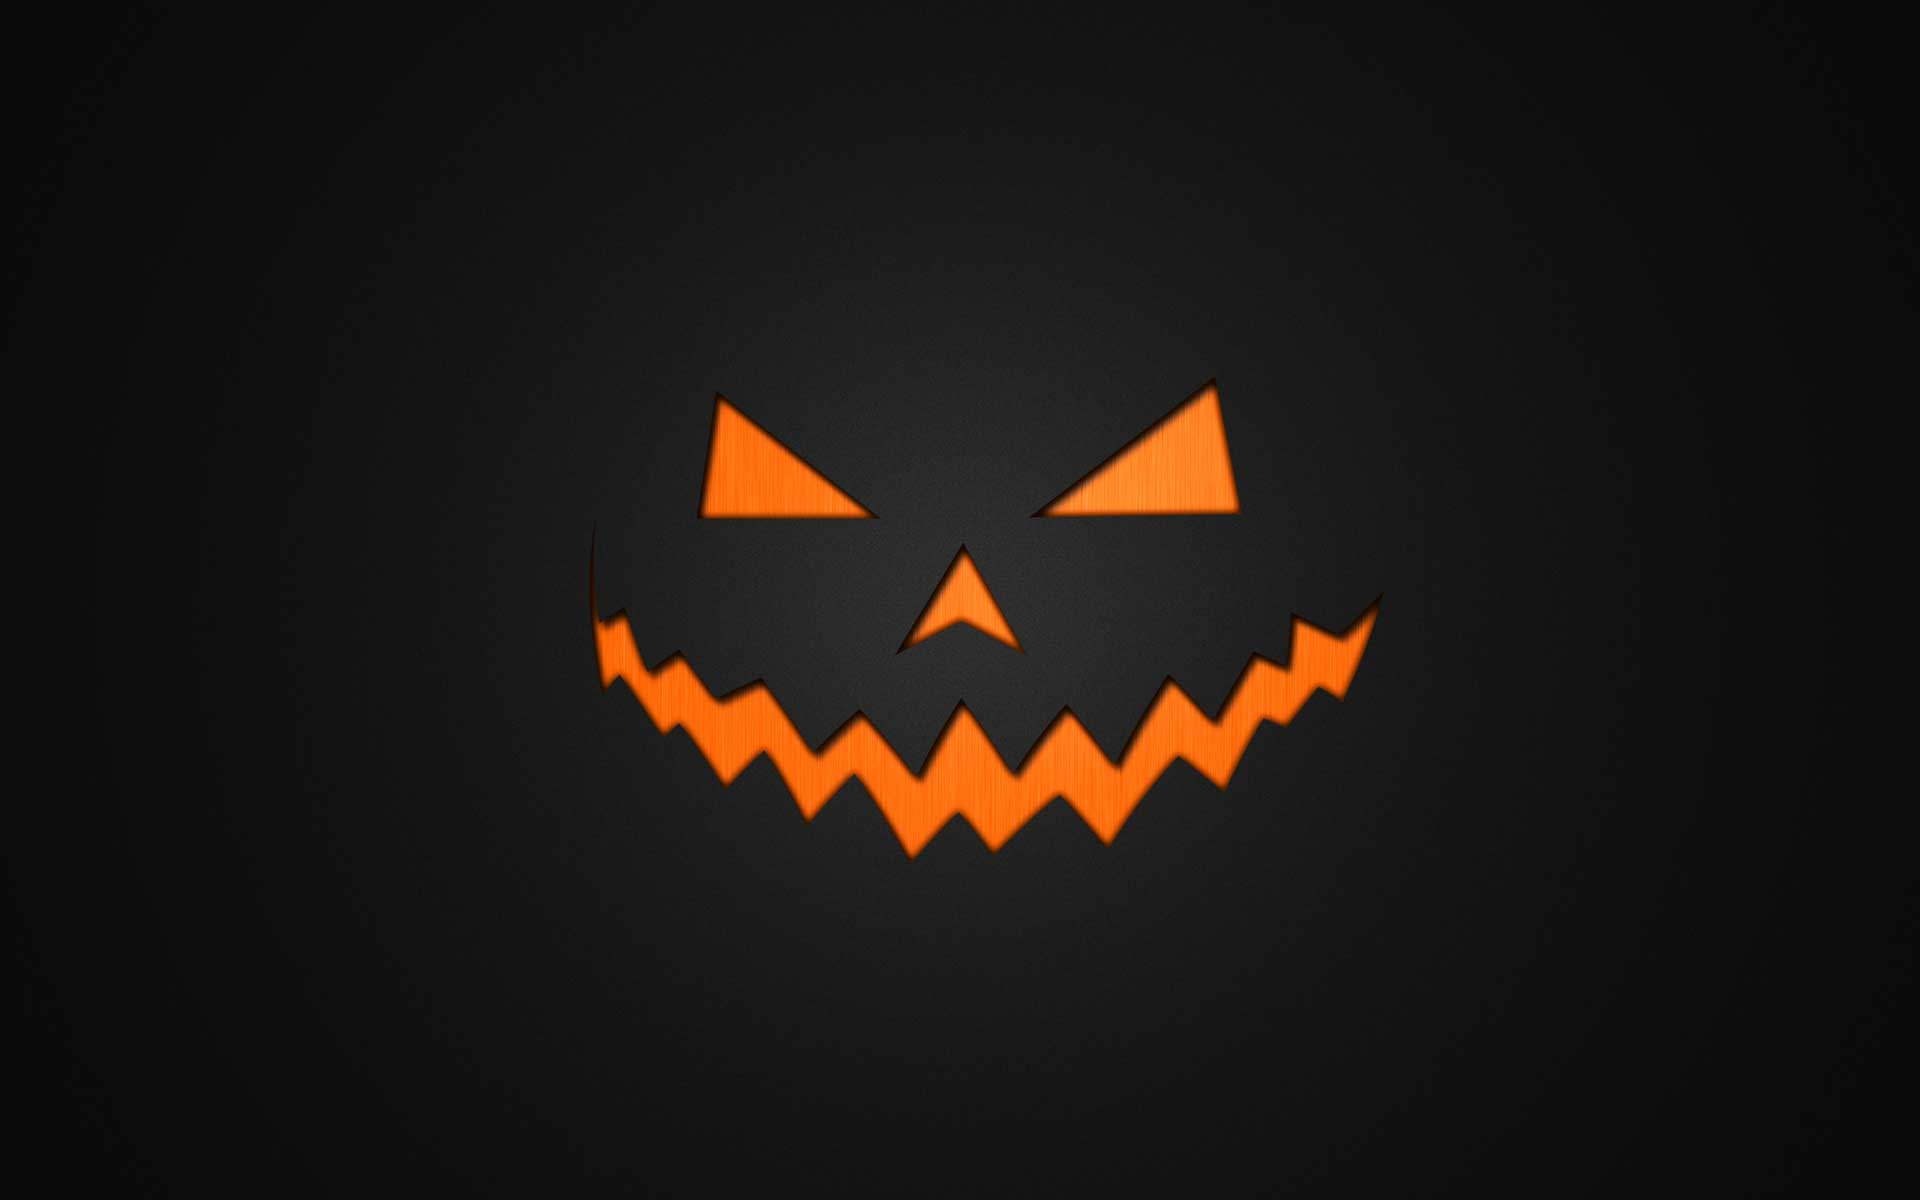 Amazing Wallpaper Halloween Screensaver - stf7XA8  HD_882586.jpg